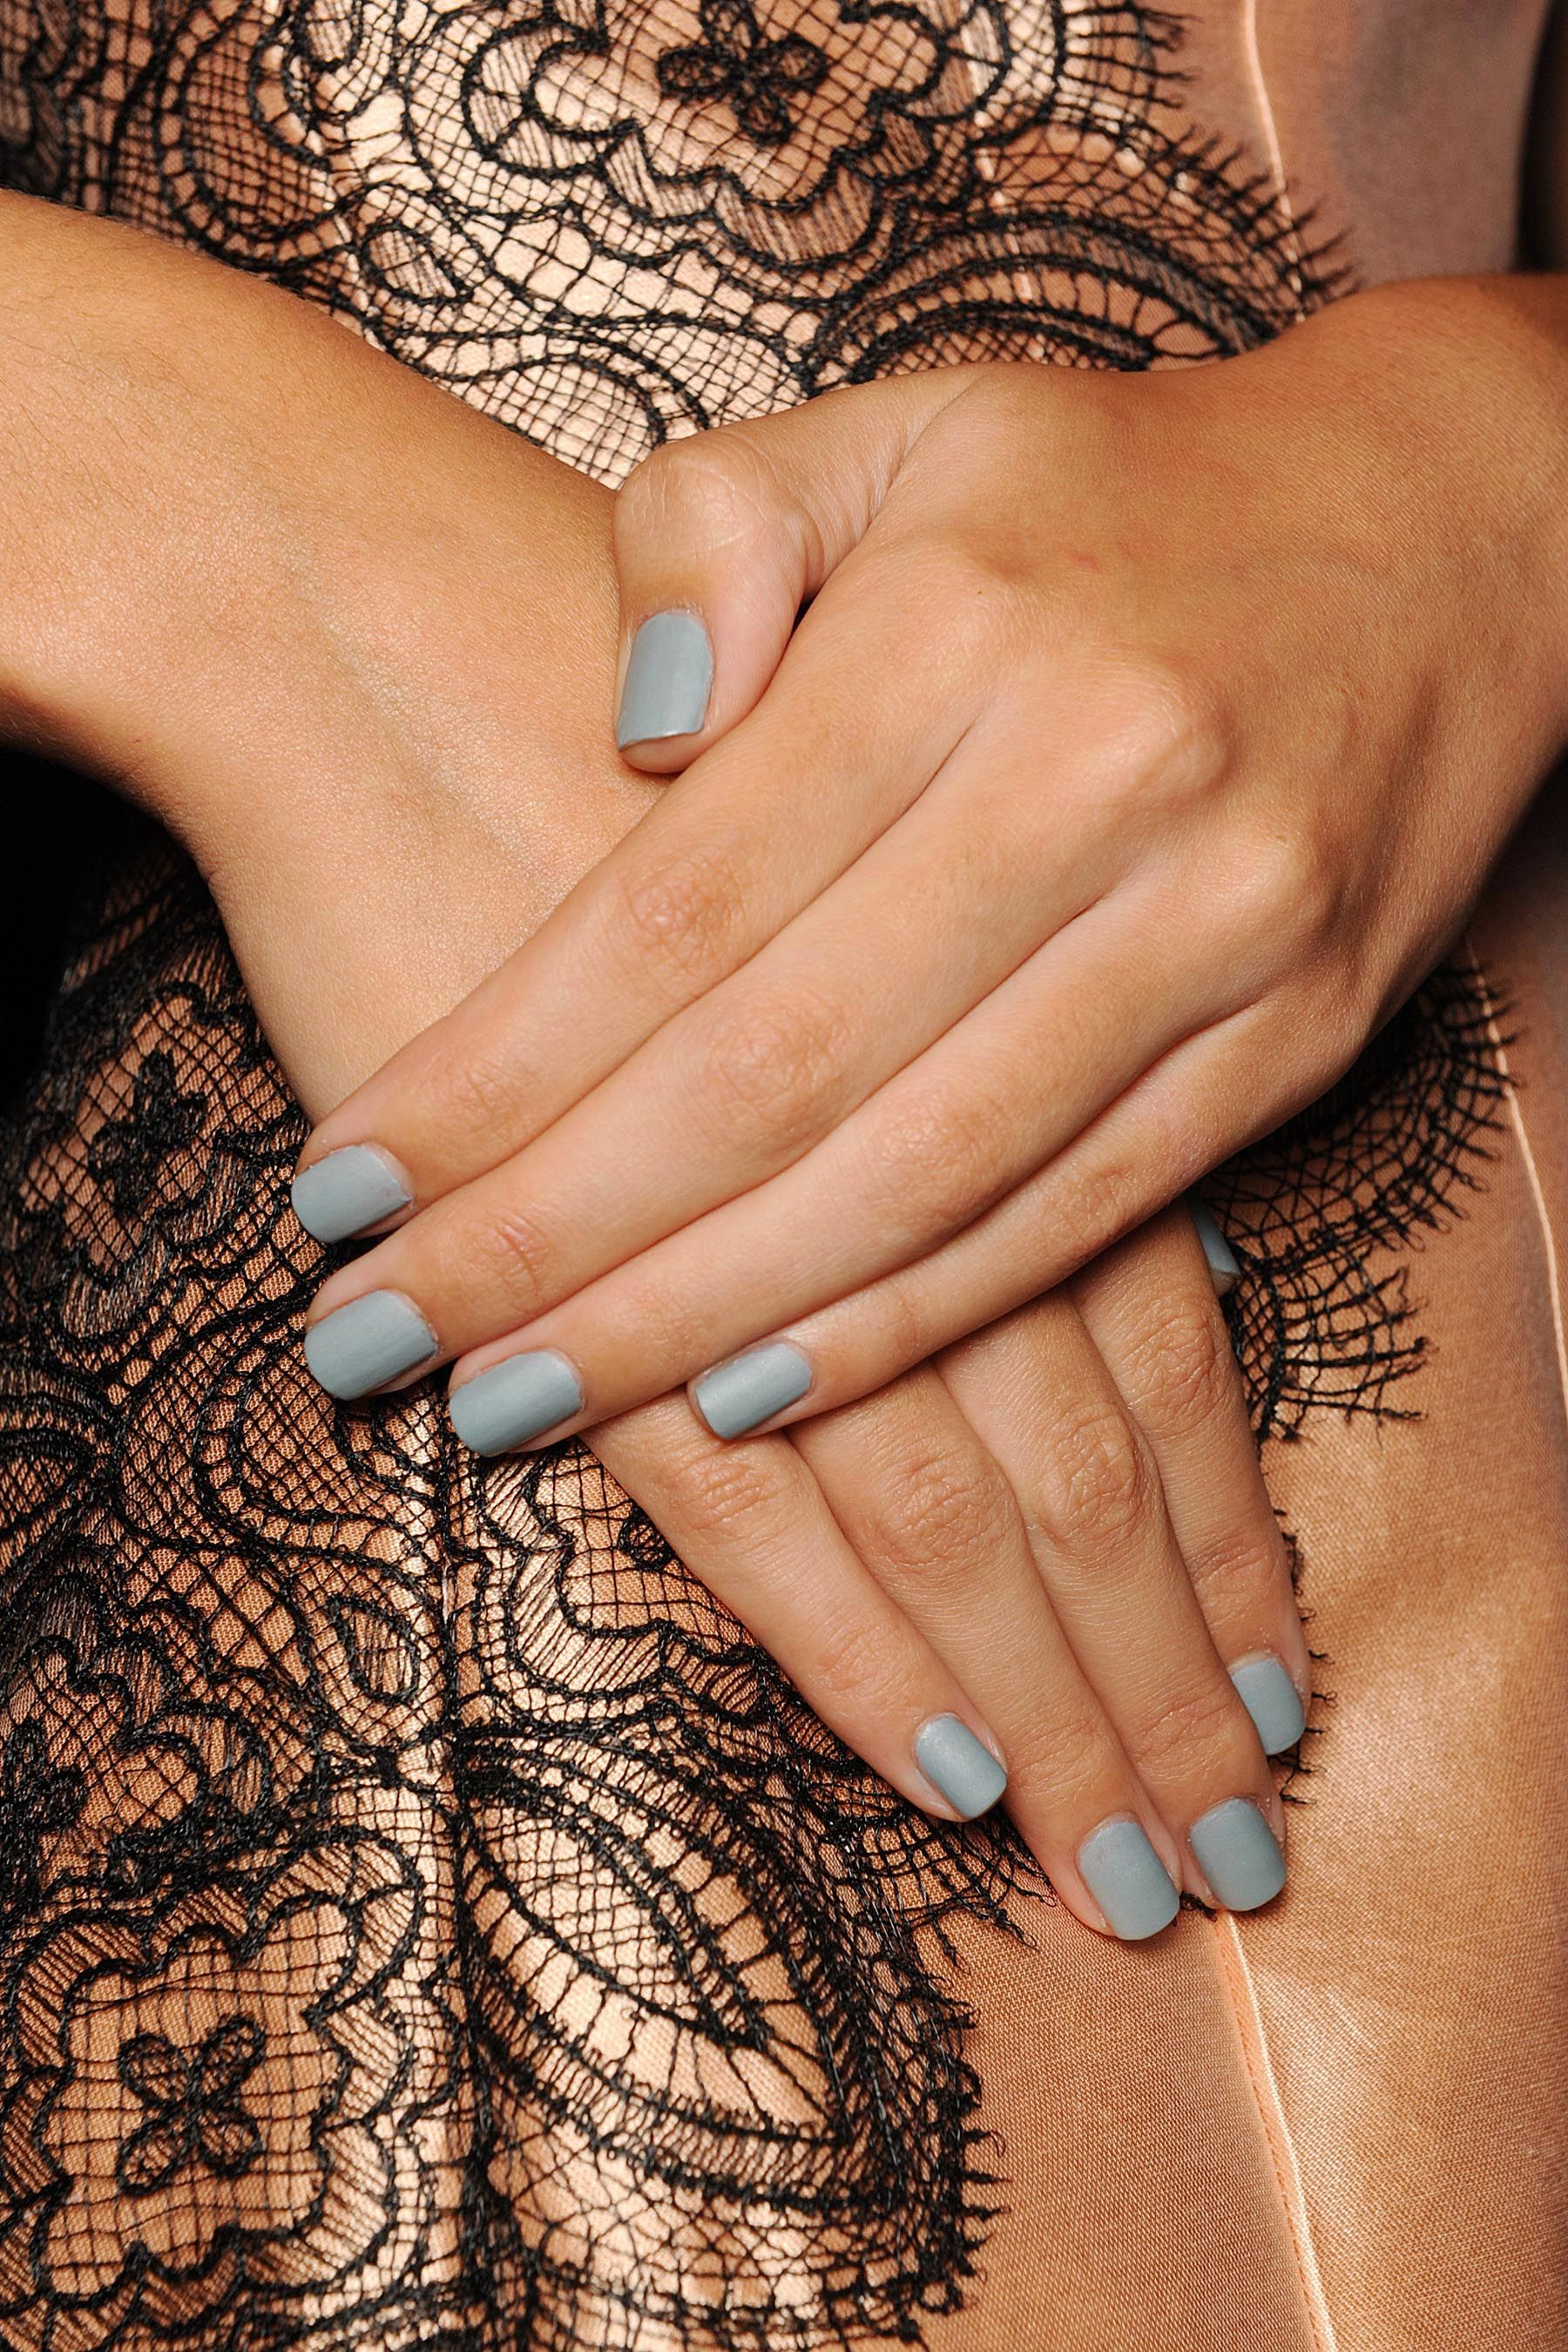 Duck egg blue nails at @Lela Johnson Johnson Johnson Johnson Johnson Johnson Johnson Johnson Rose SS 14 #NYFW